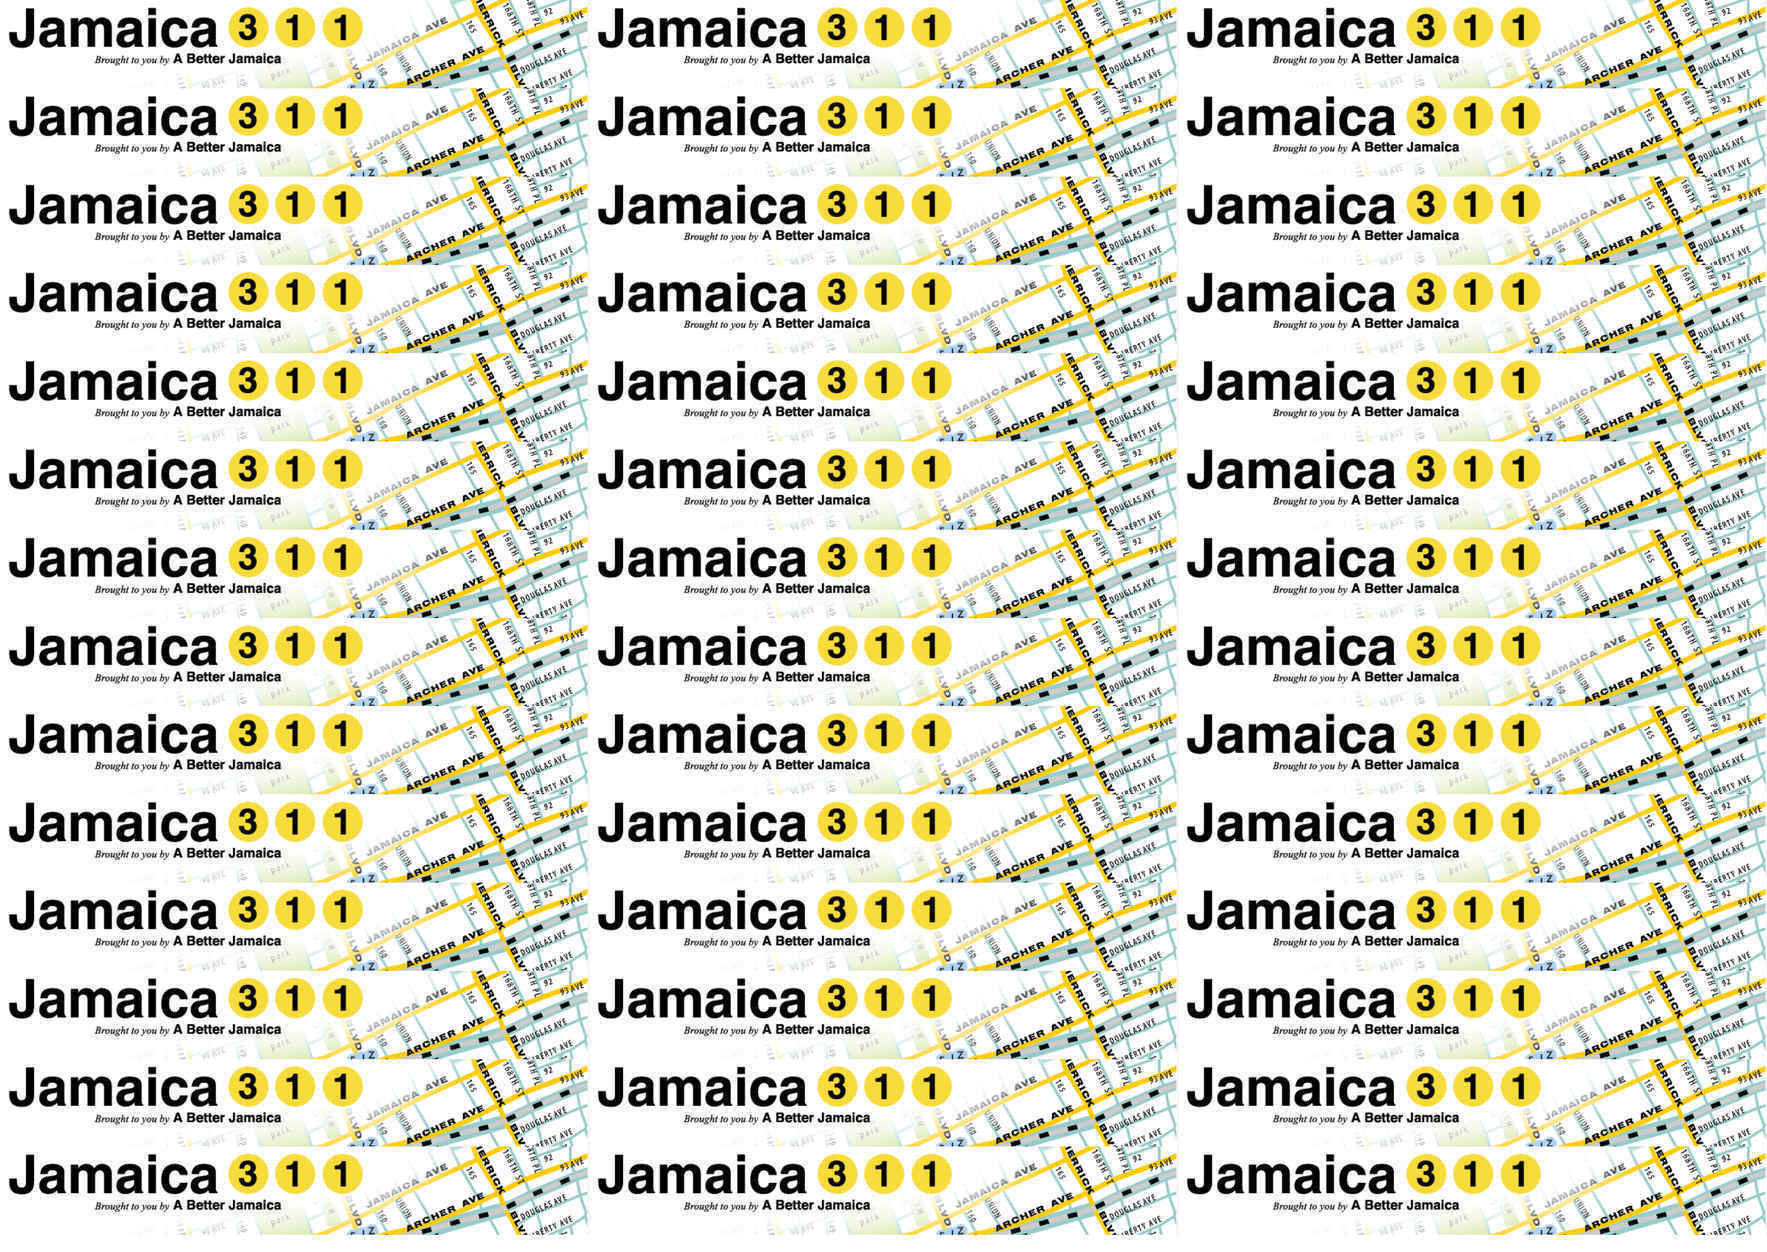 Make a donation to support Jamaica311 today! image